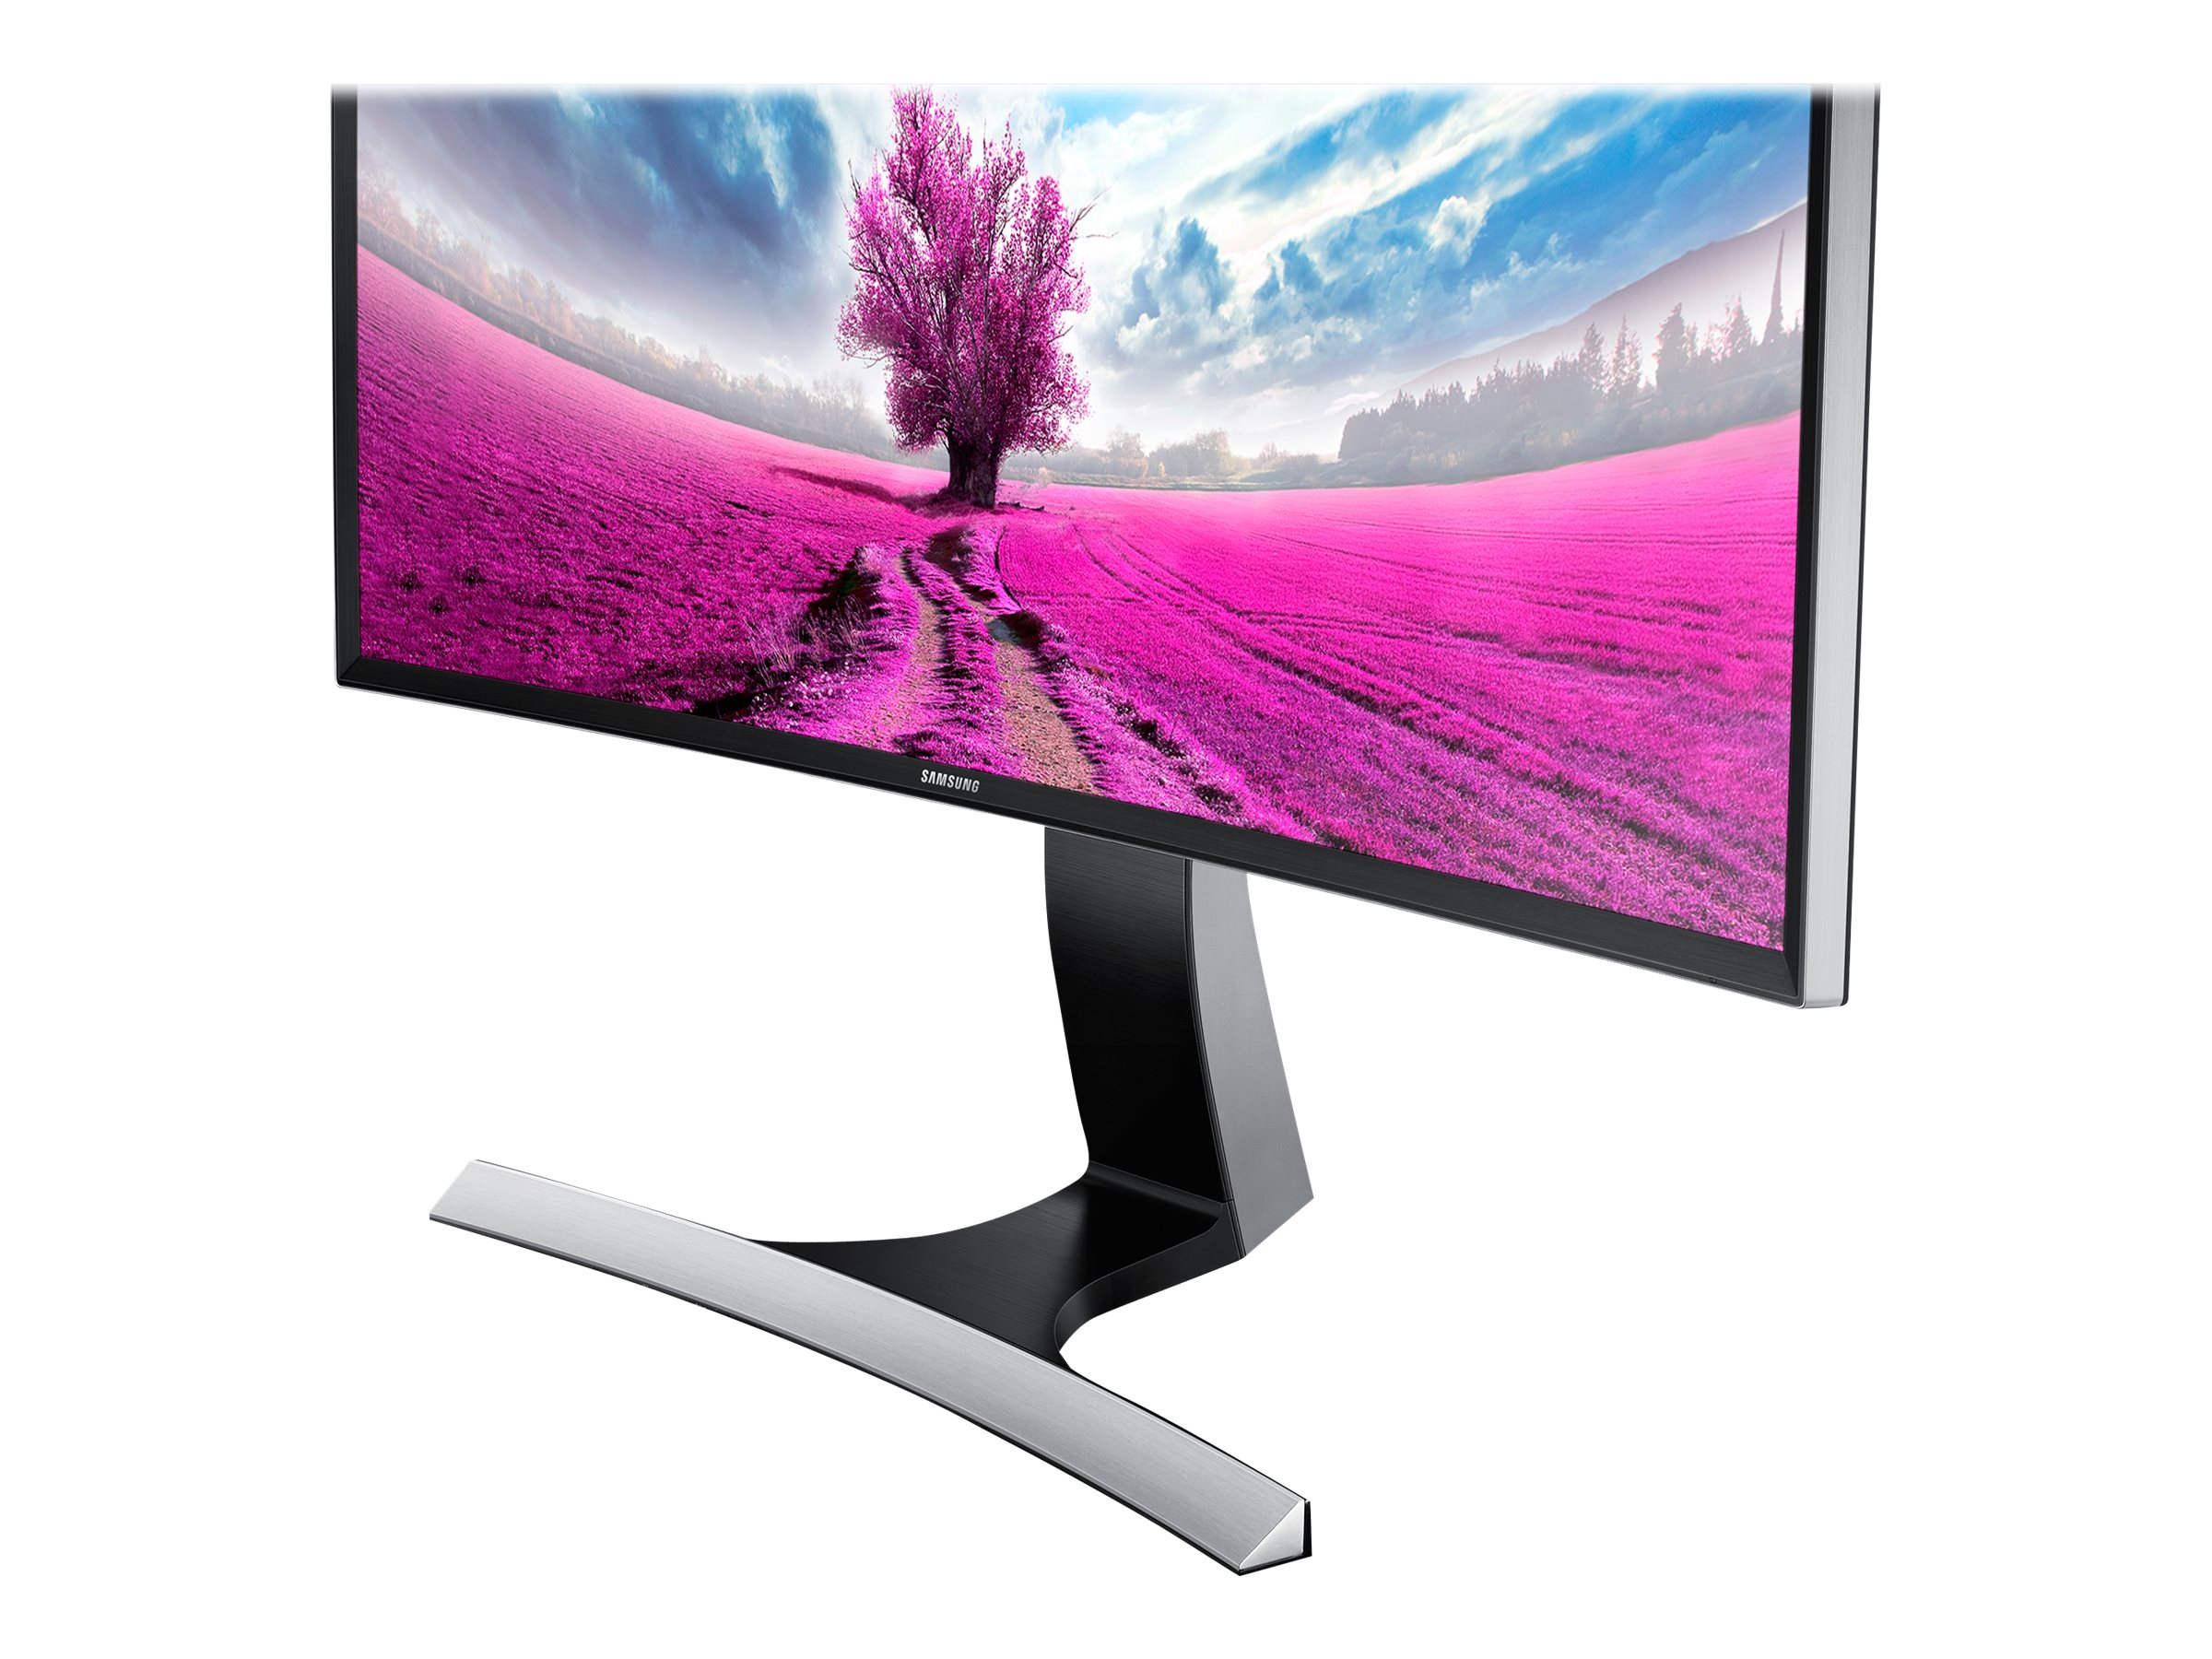 Samsung 29 SE790C WFHD LED-LCD Ultrawide Curved Monitor, Black, S29E790C